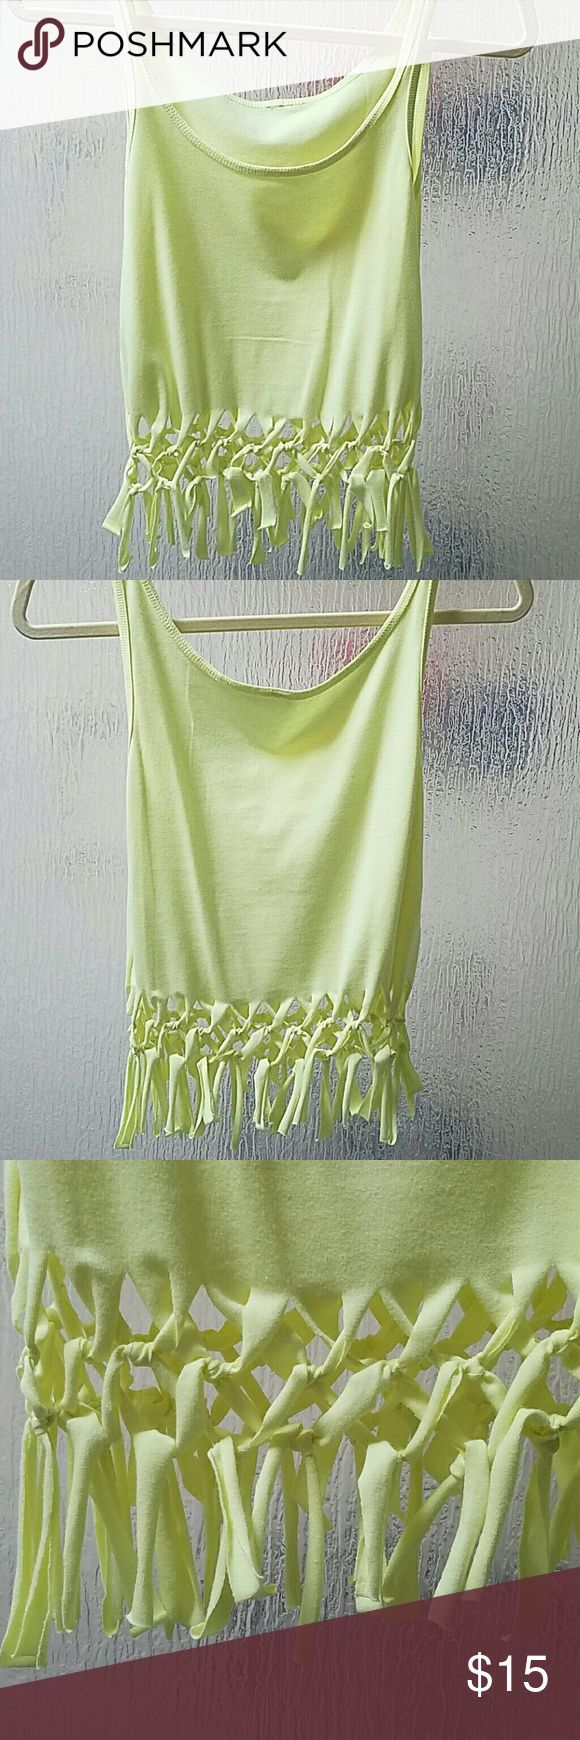 Homemade Crop Tank Top Perfect as a beach cover up or for music festivals, fitted tank top, shows midriff. Small available in Neon Yellow, Large in Bright Pink, XL in Aqua Merona Tops Crop Tops